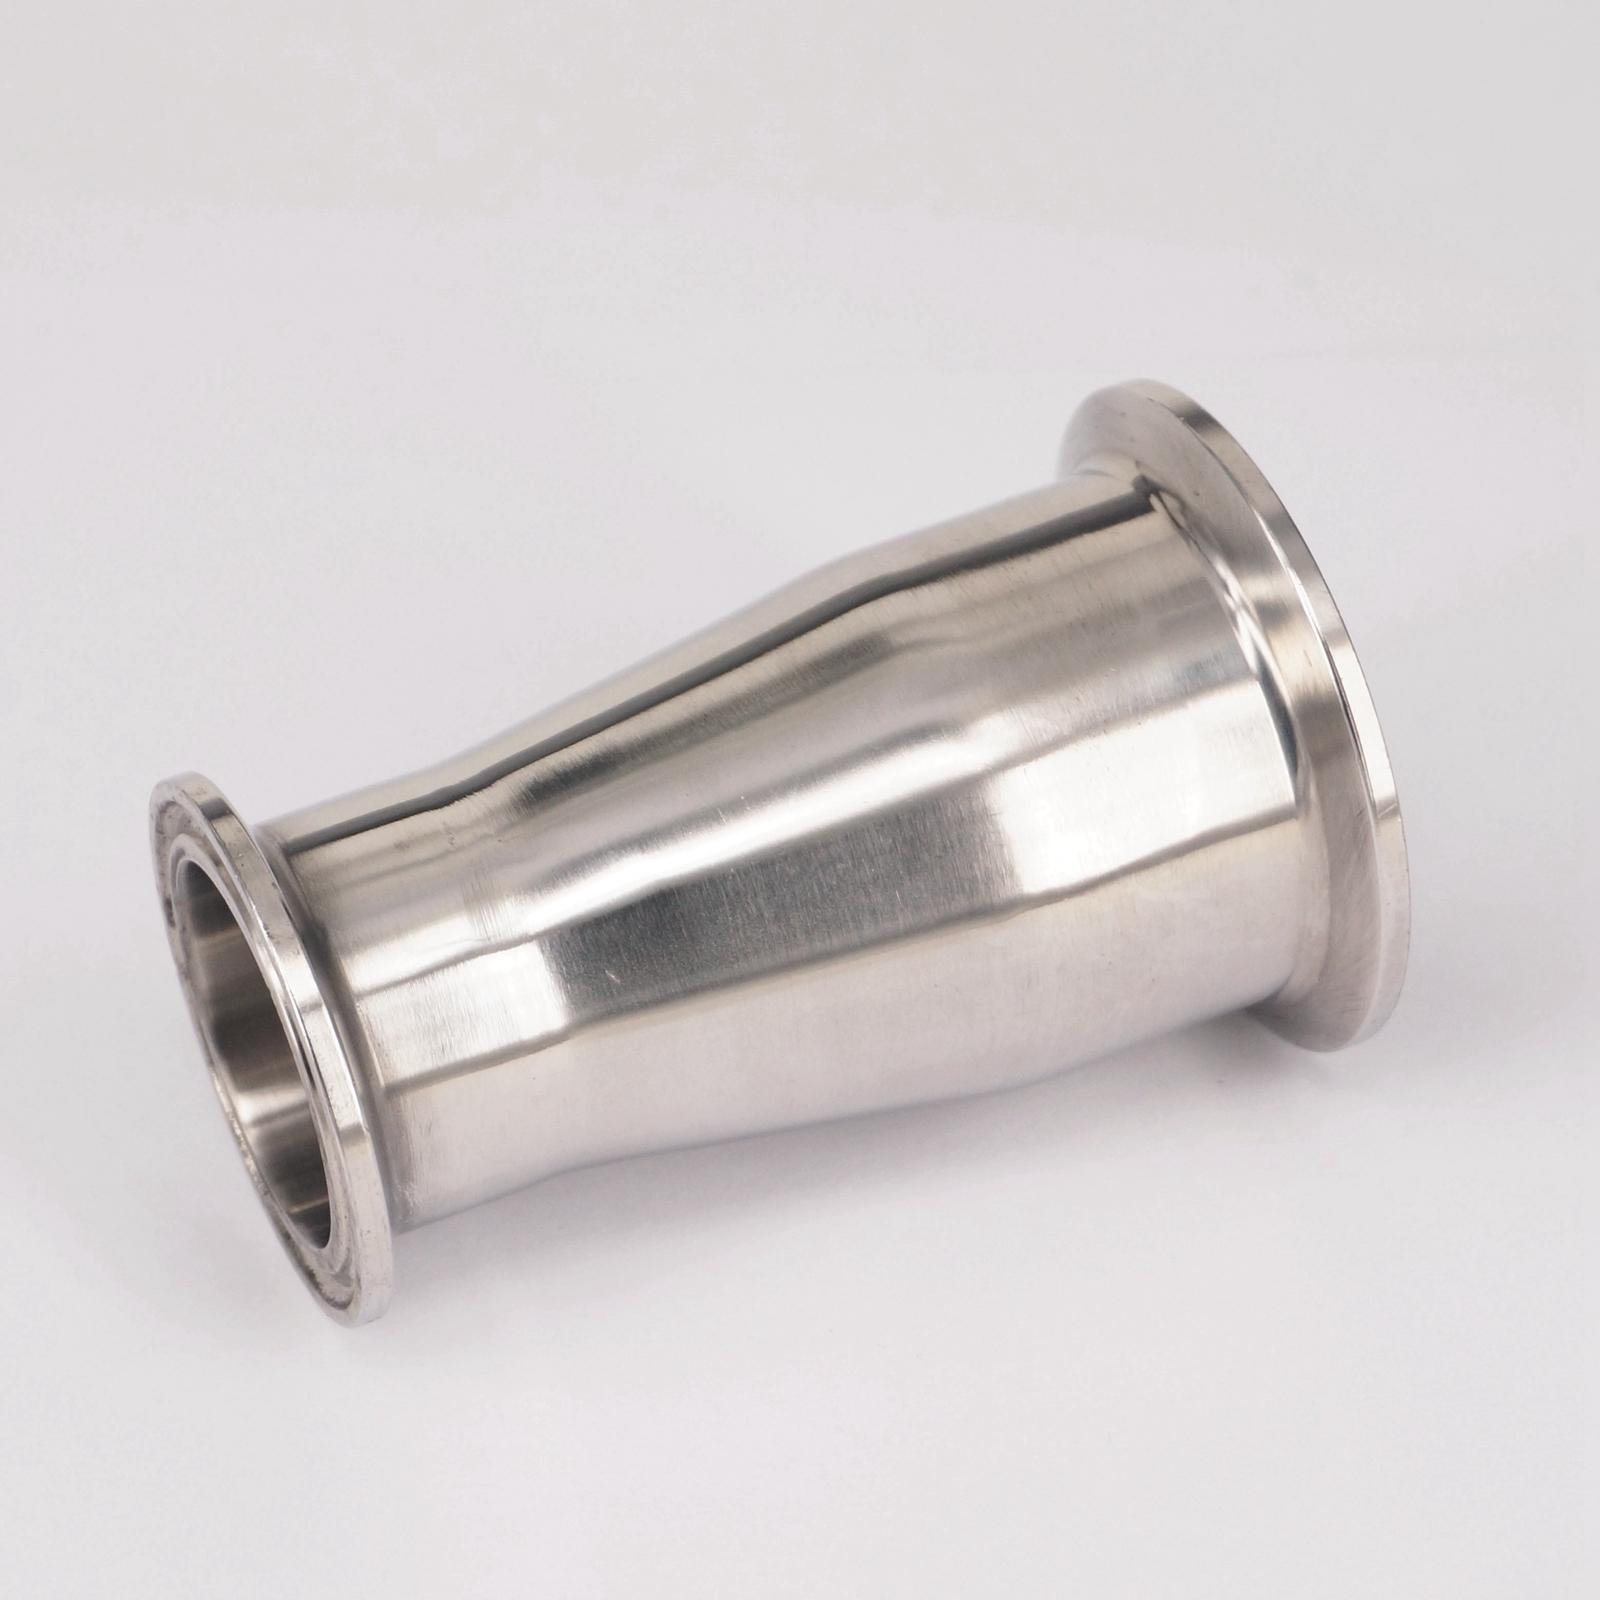 2 Tri Clamp Turn to 1.5 Tri Clamp Reducer 304 Stainless Steel Sanitary Pipe Fitting Connector For Homebrew 1 2 bsp male x 1 5 tri clamp 304 stainless steel pipe fitting connector for homebrew with hex nut